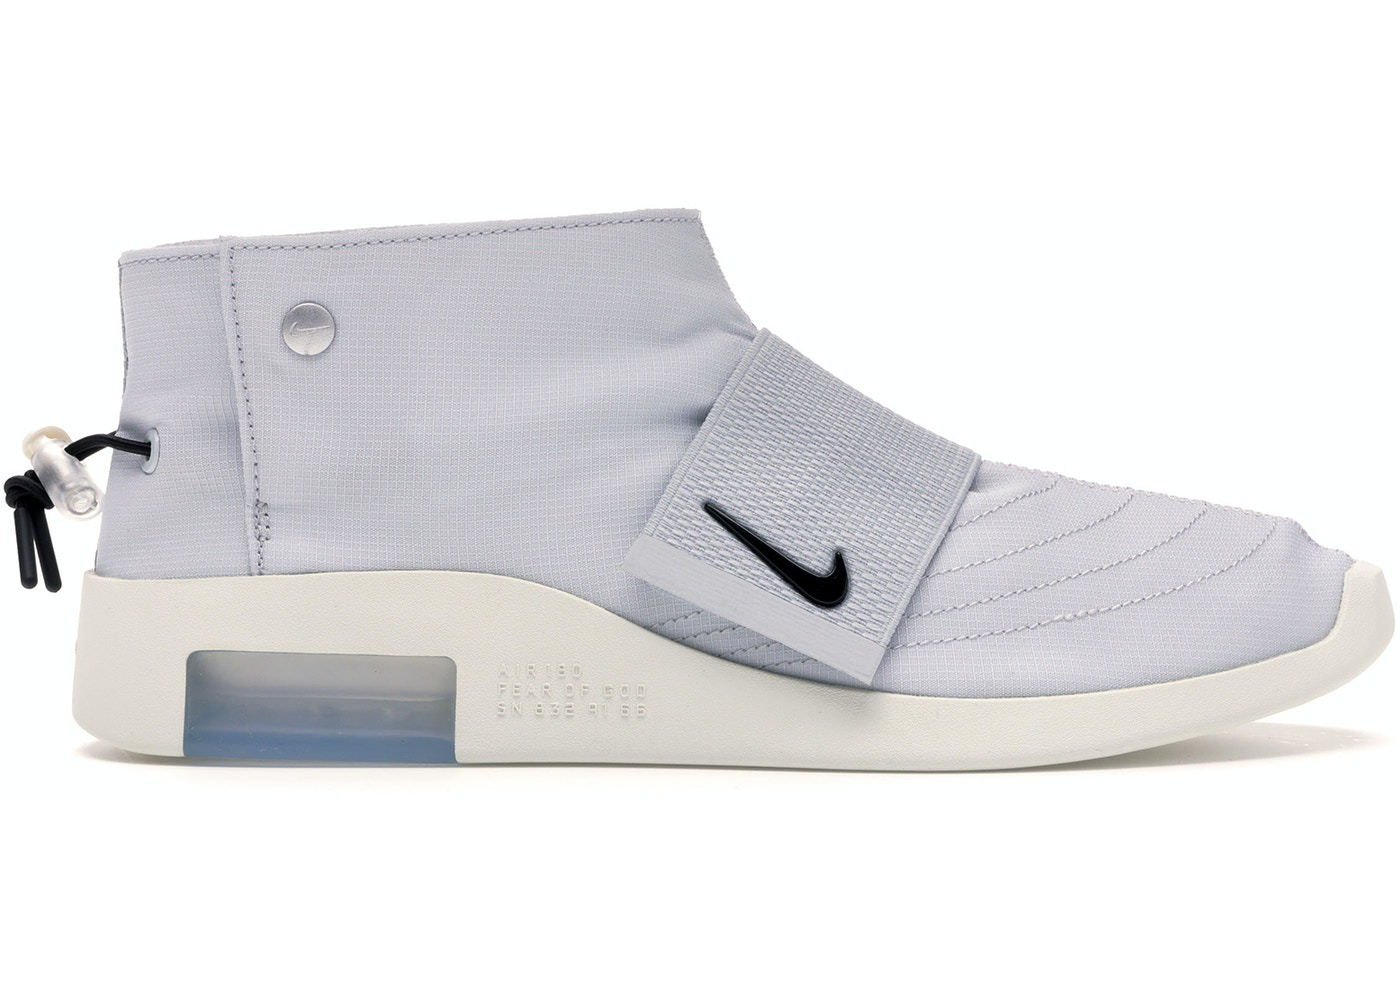 3637ba76 Nike Other Other Shoes - Release Date